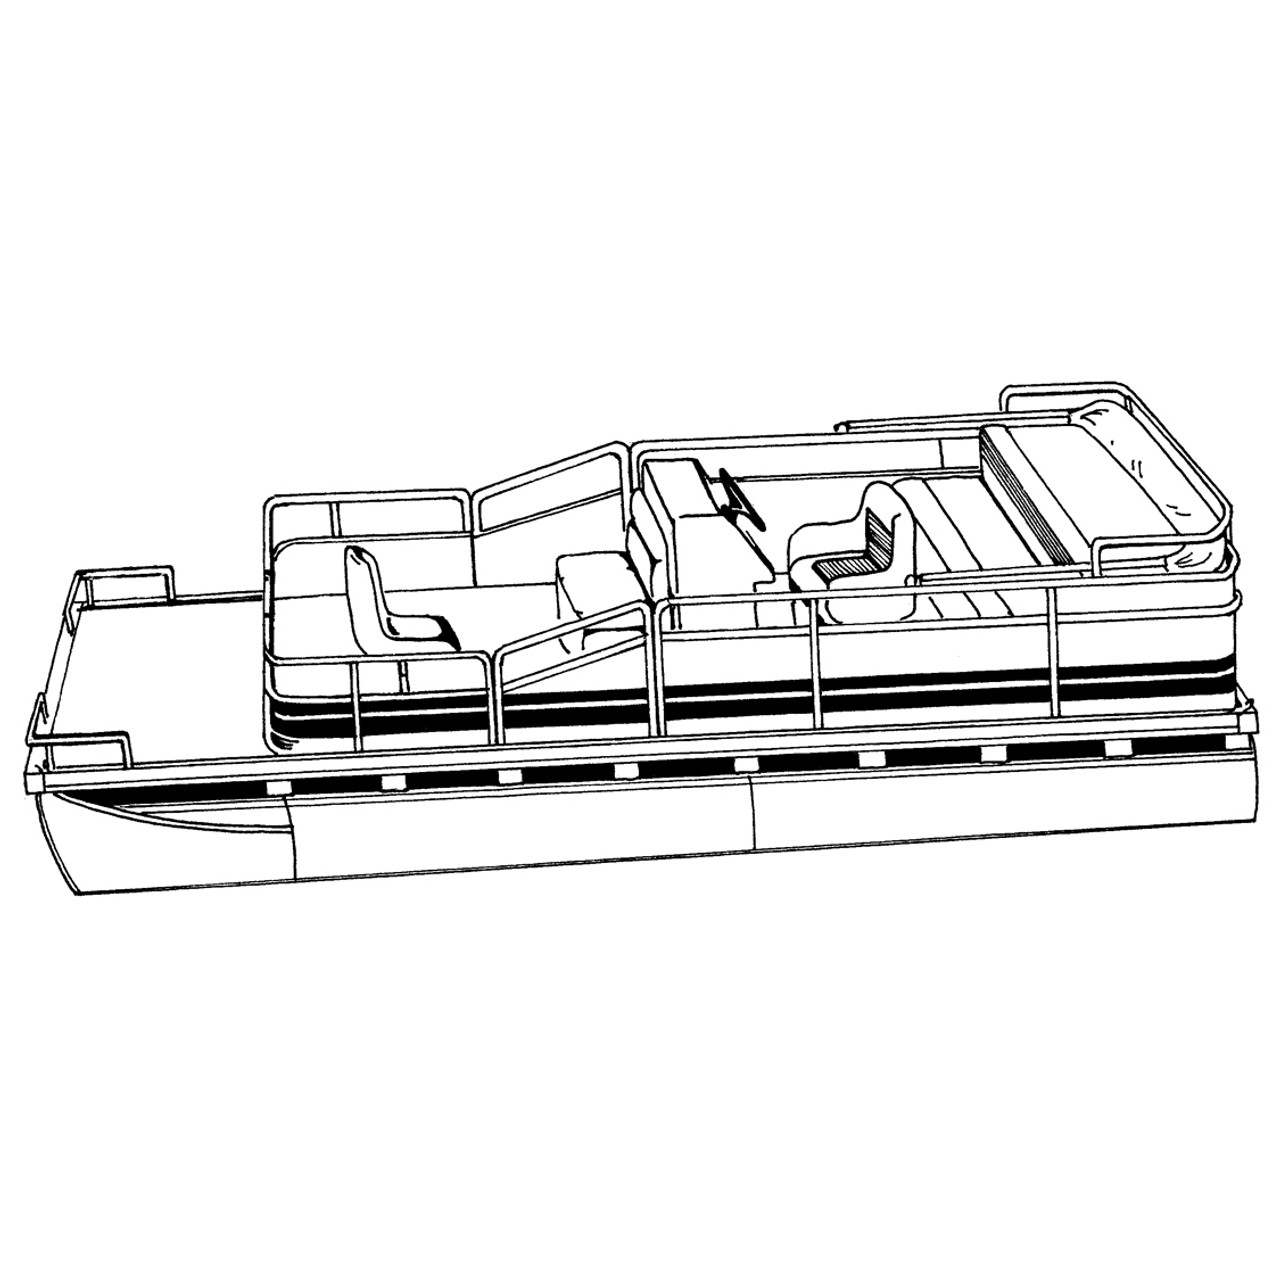 medium resolution of cover fits pontoon with bimini top and rails that partially enclose deck leaving 1